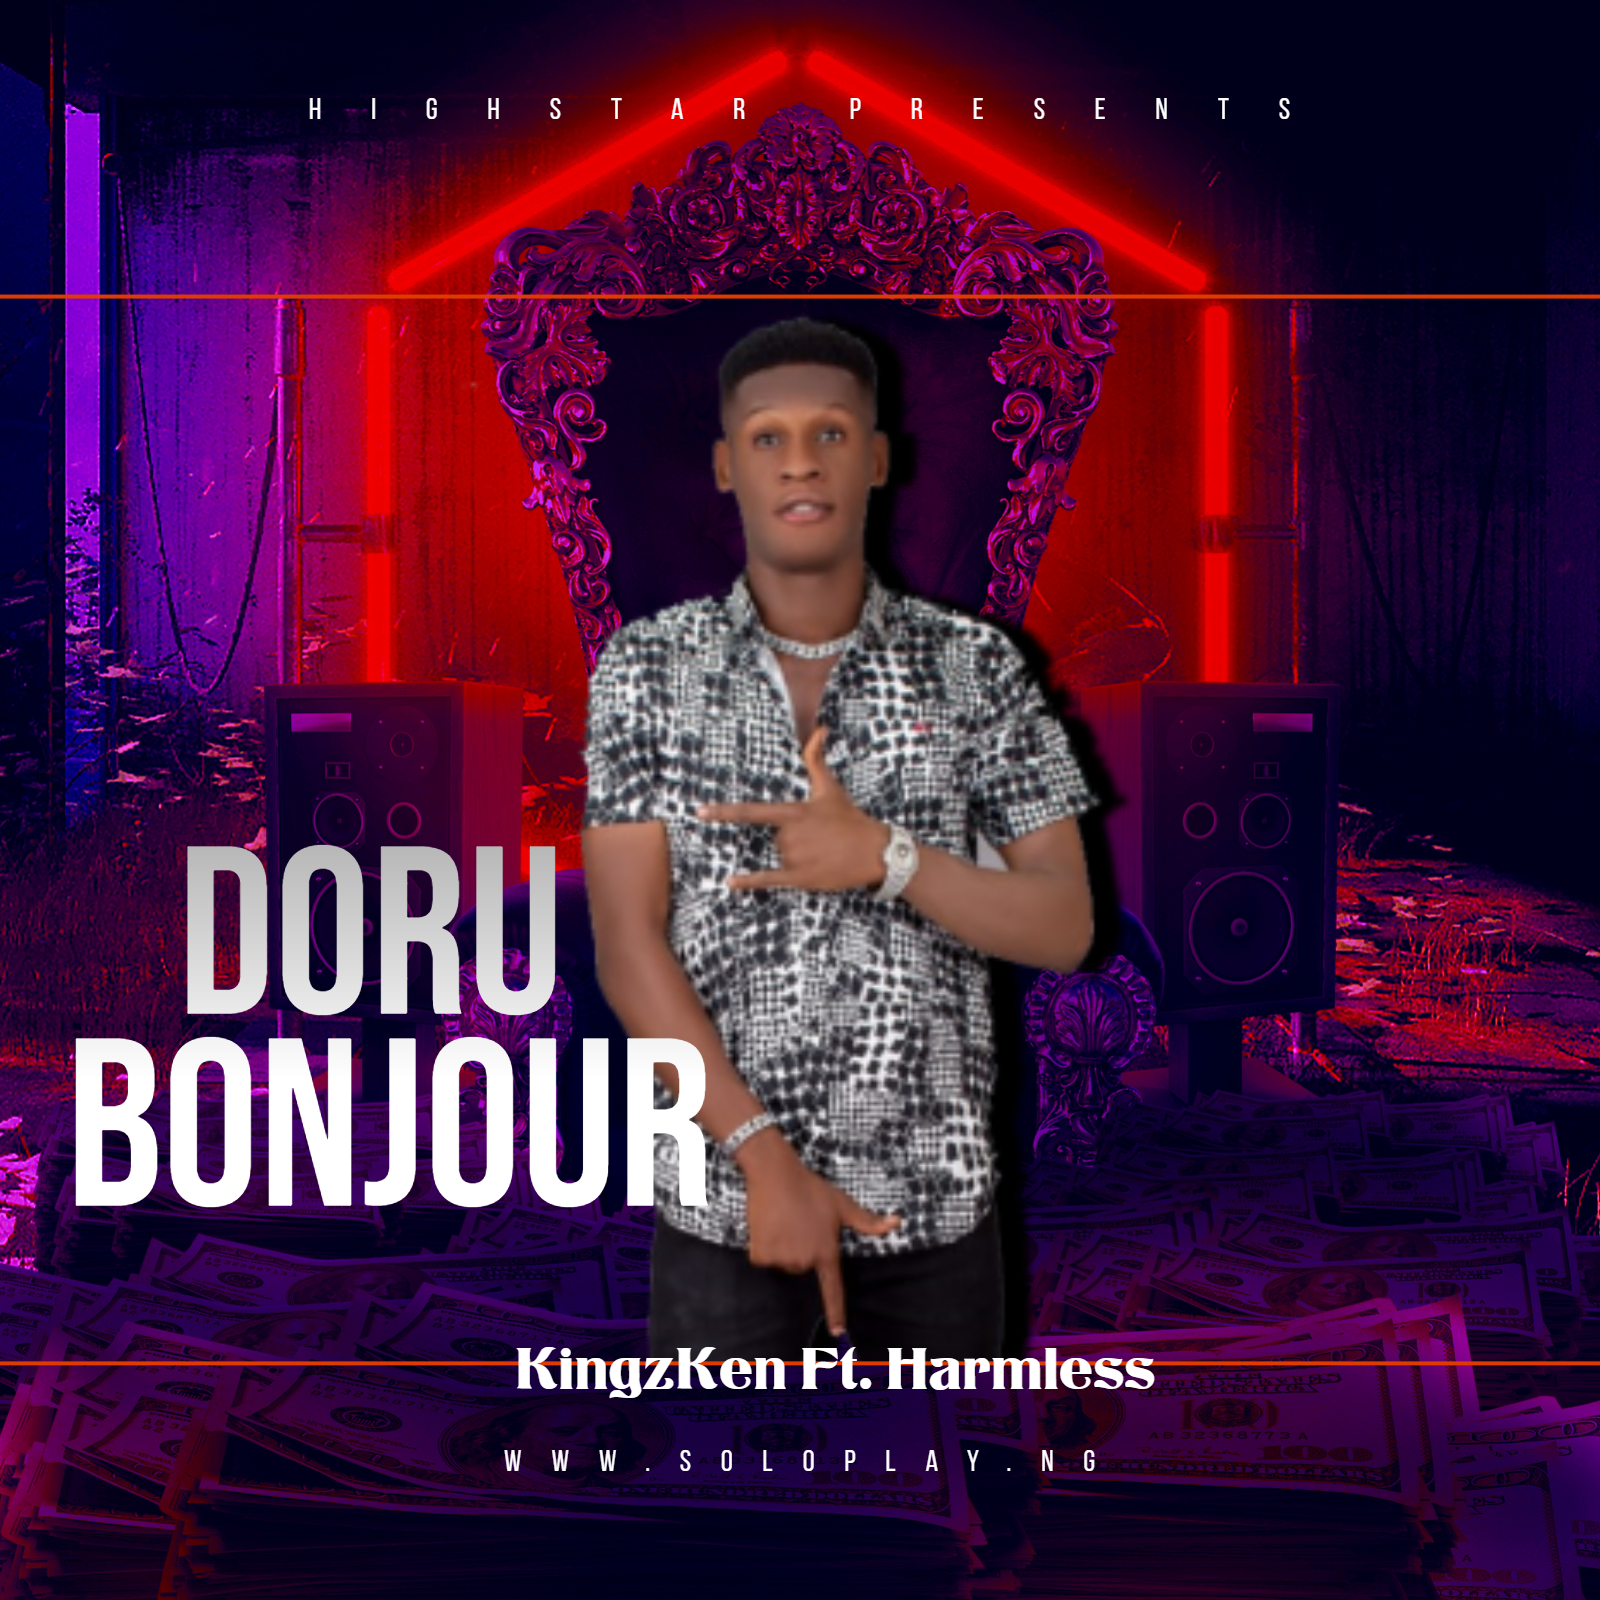 KINGZKEN FT HARMLESS – DORU BONJOUR